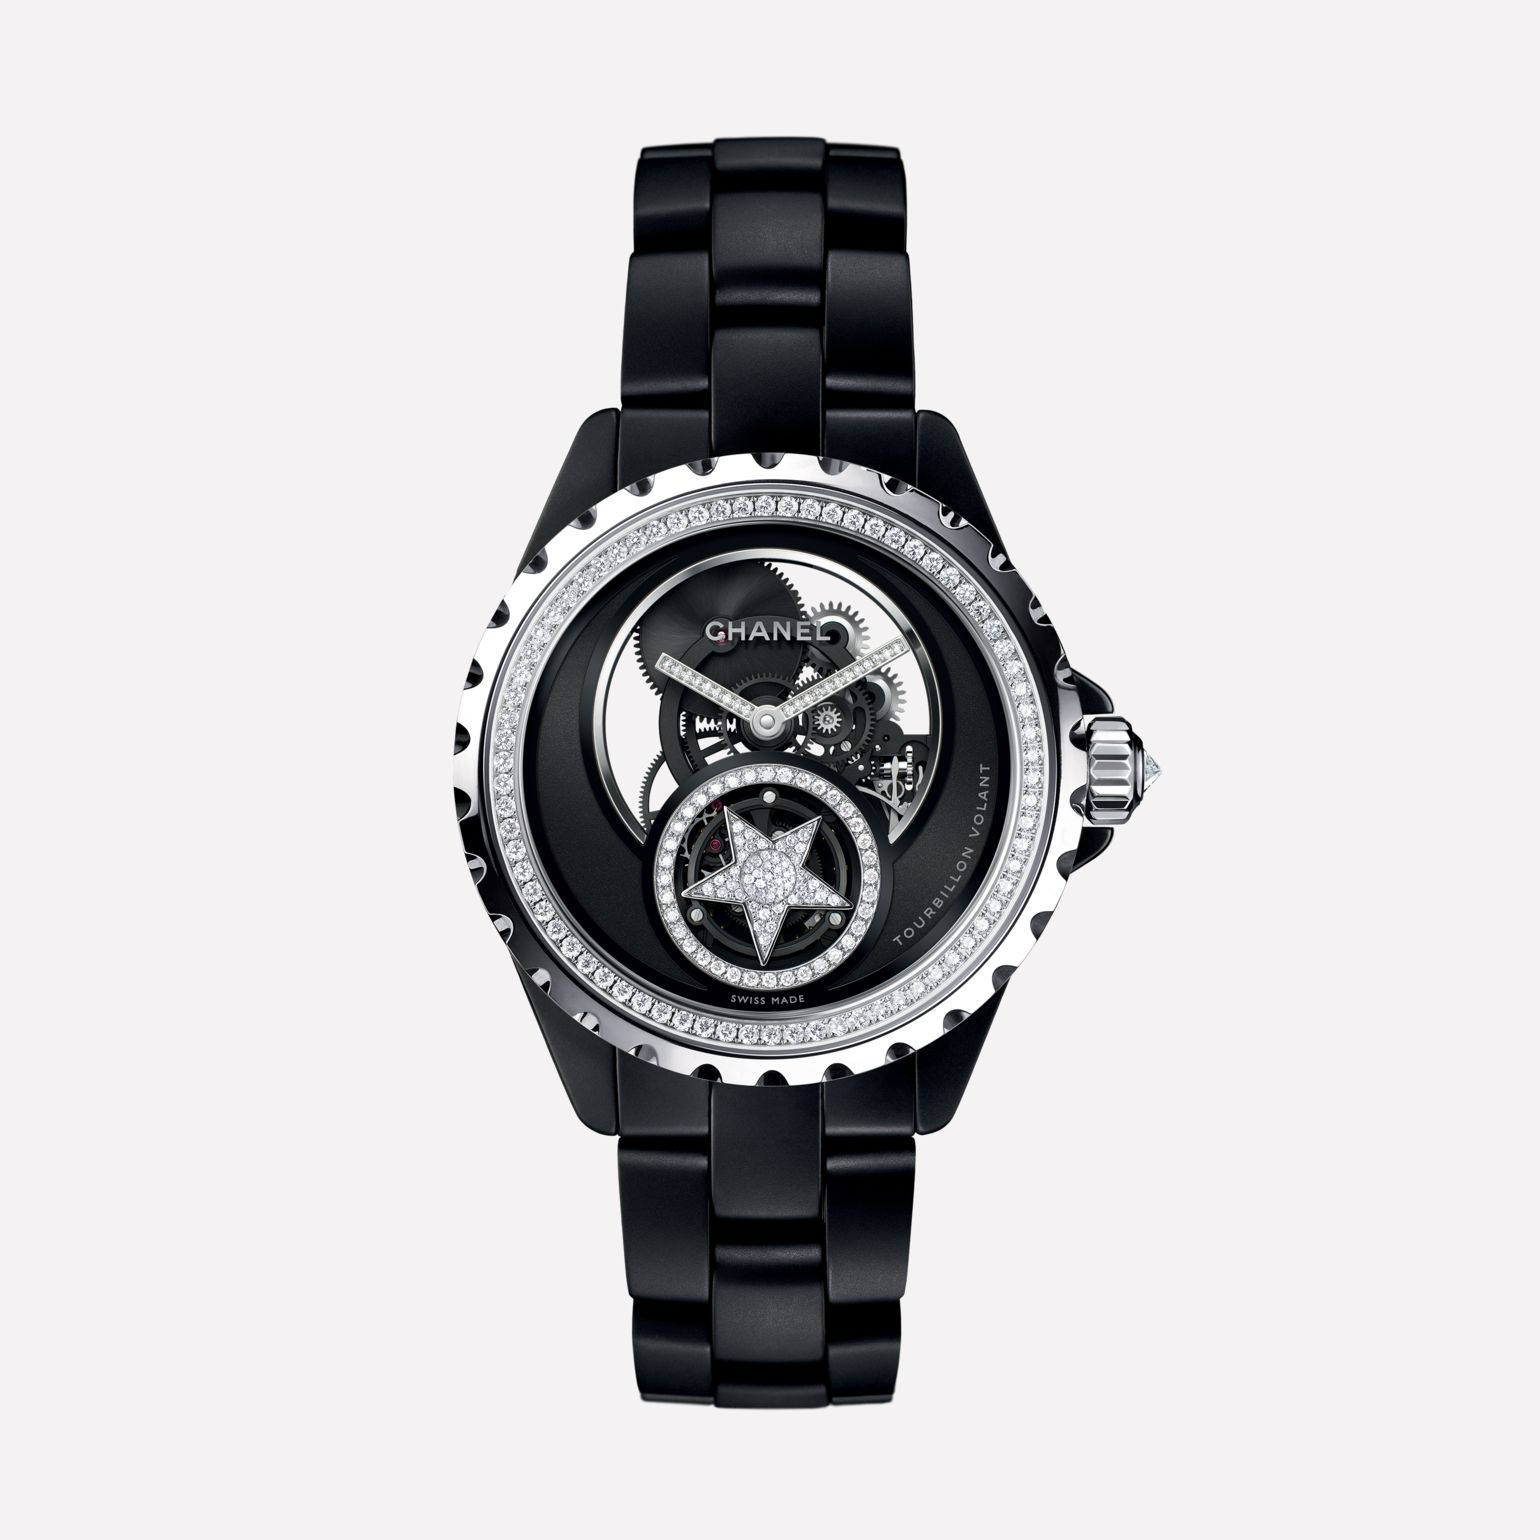 J12 Flying Tourbillon Skeleton White gold and matt black highly resistant ceramic, bezel and crown set with diamonds, openwork dial